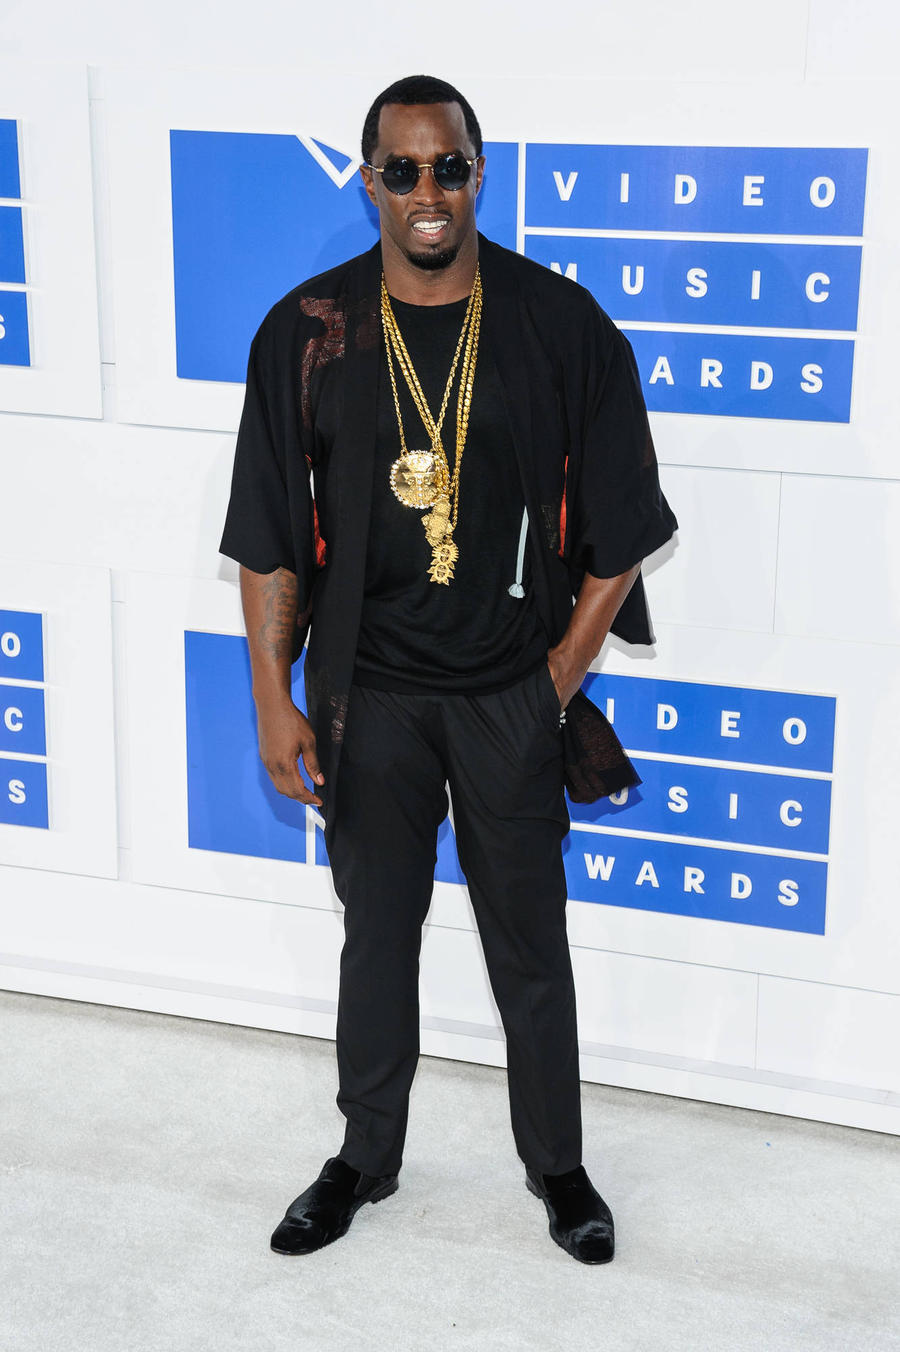 Sean 'Diddy' Combs 'Doing Great' After Knee Surgery